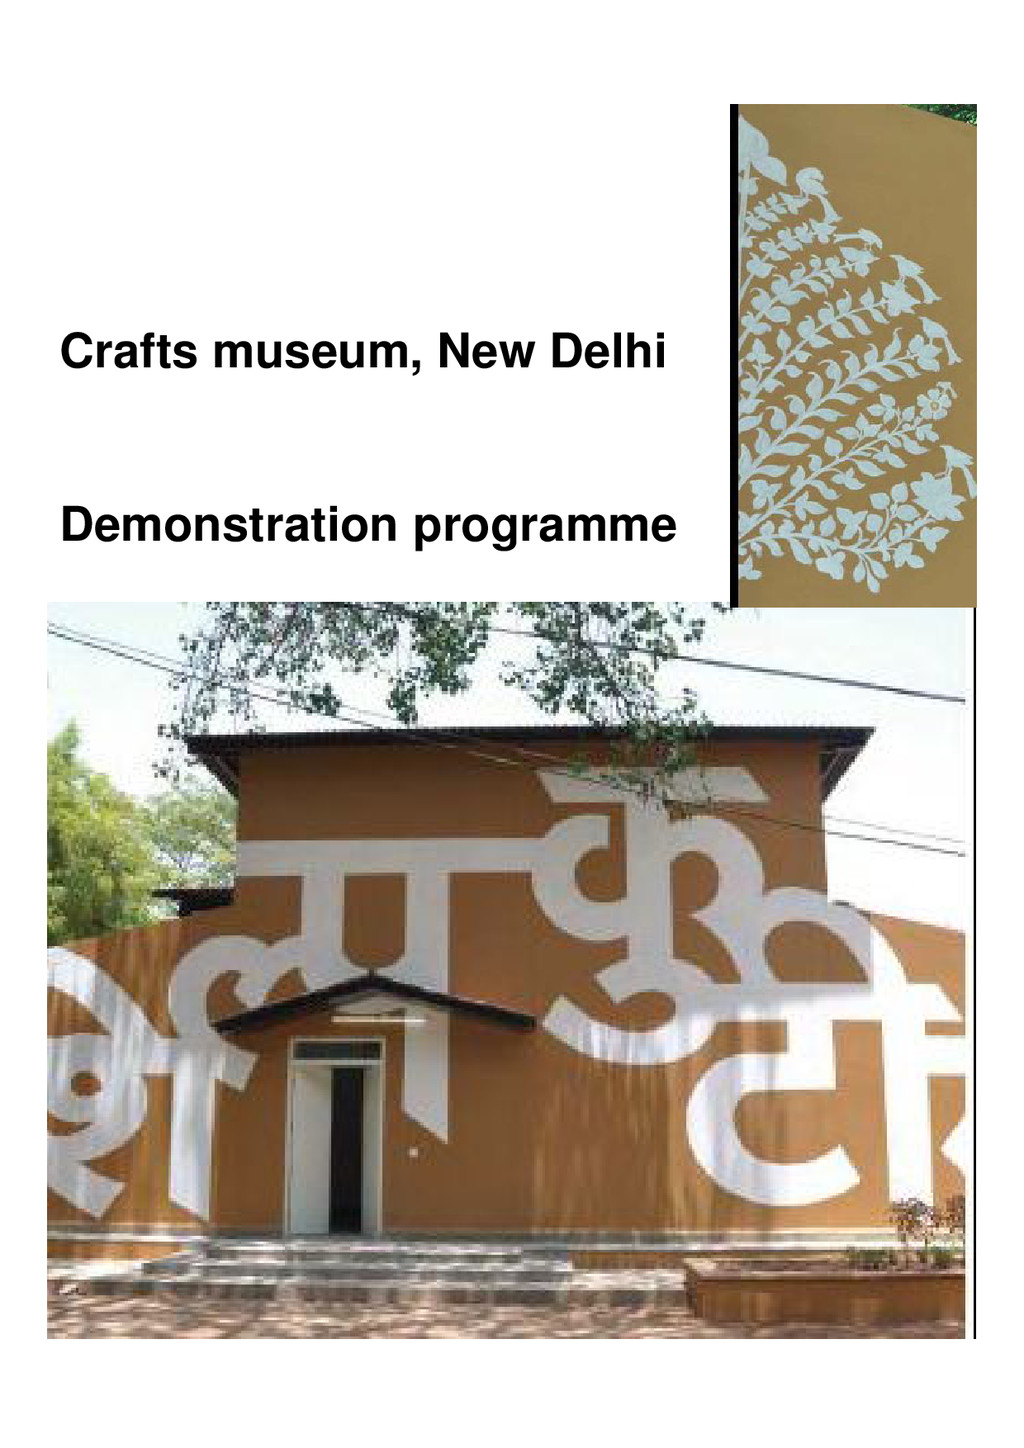 Crafts museum, New Delhi Demonstration programme